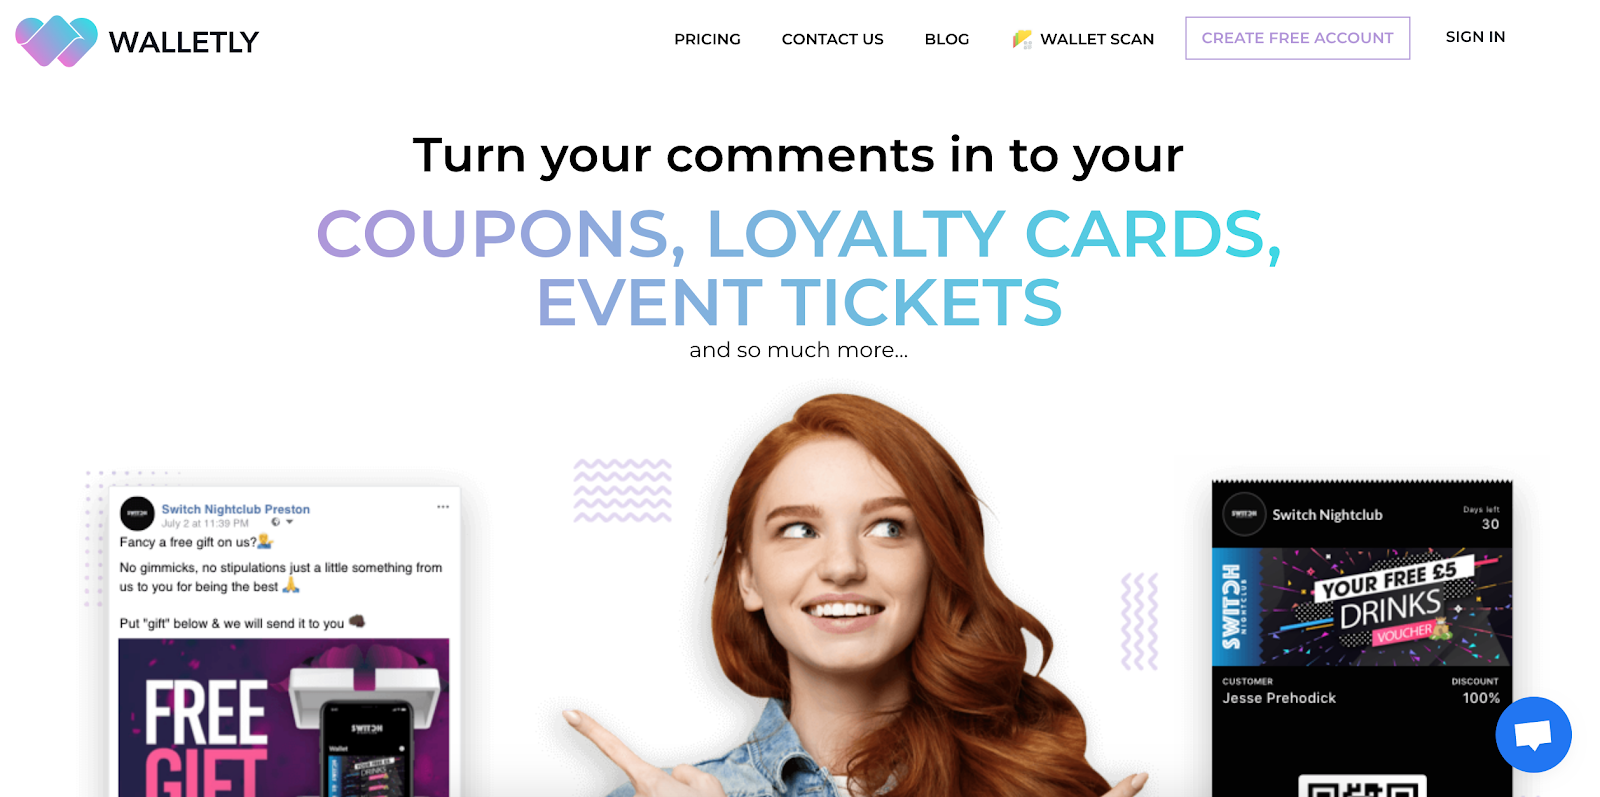 Walletly Customer Loyalty and Event Management Tool